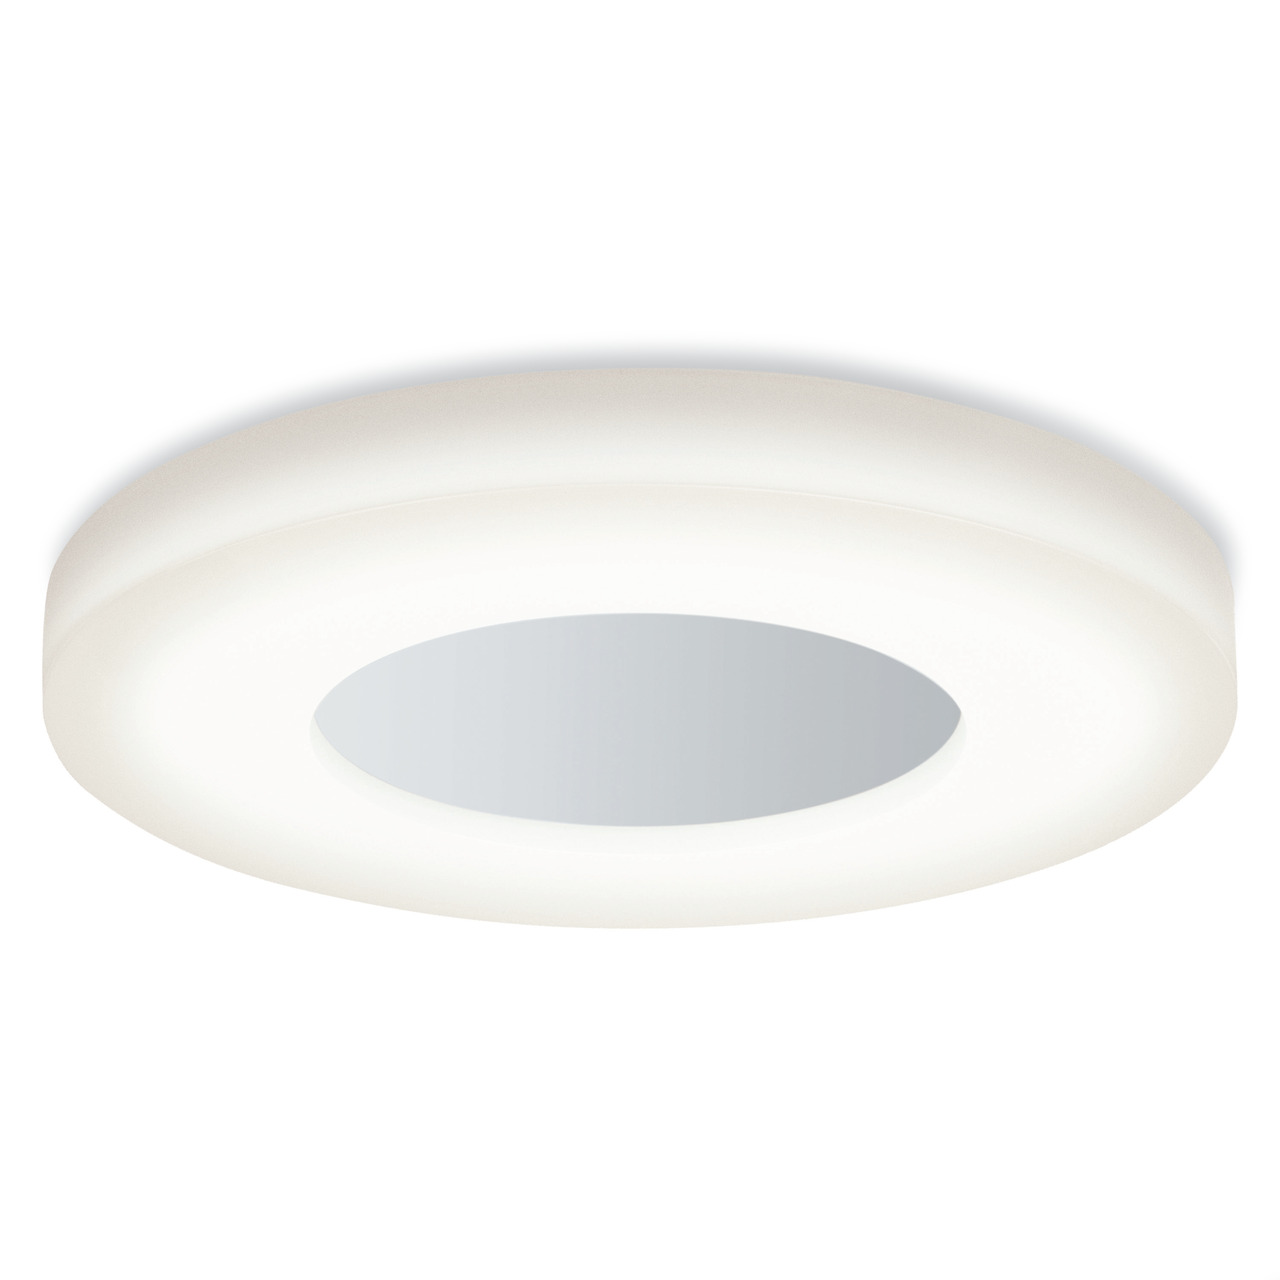 Ledvance LED RING 18-W-LED-Decken-Wandleuchte- warmweiss